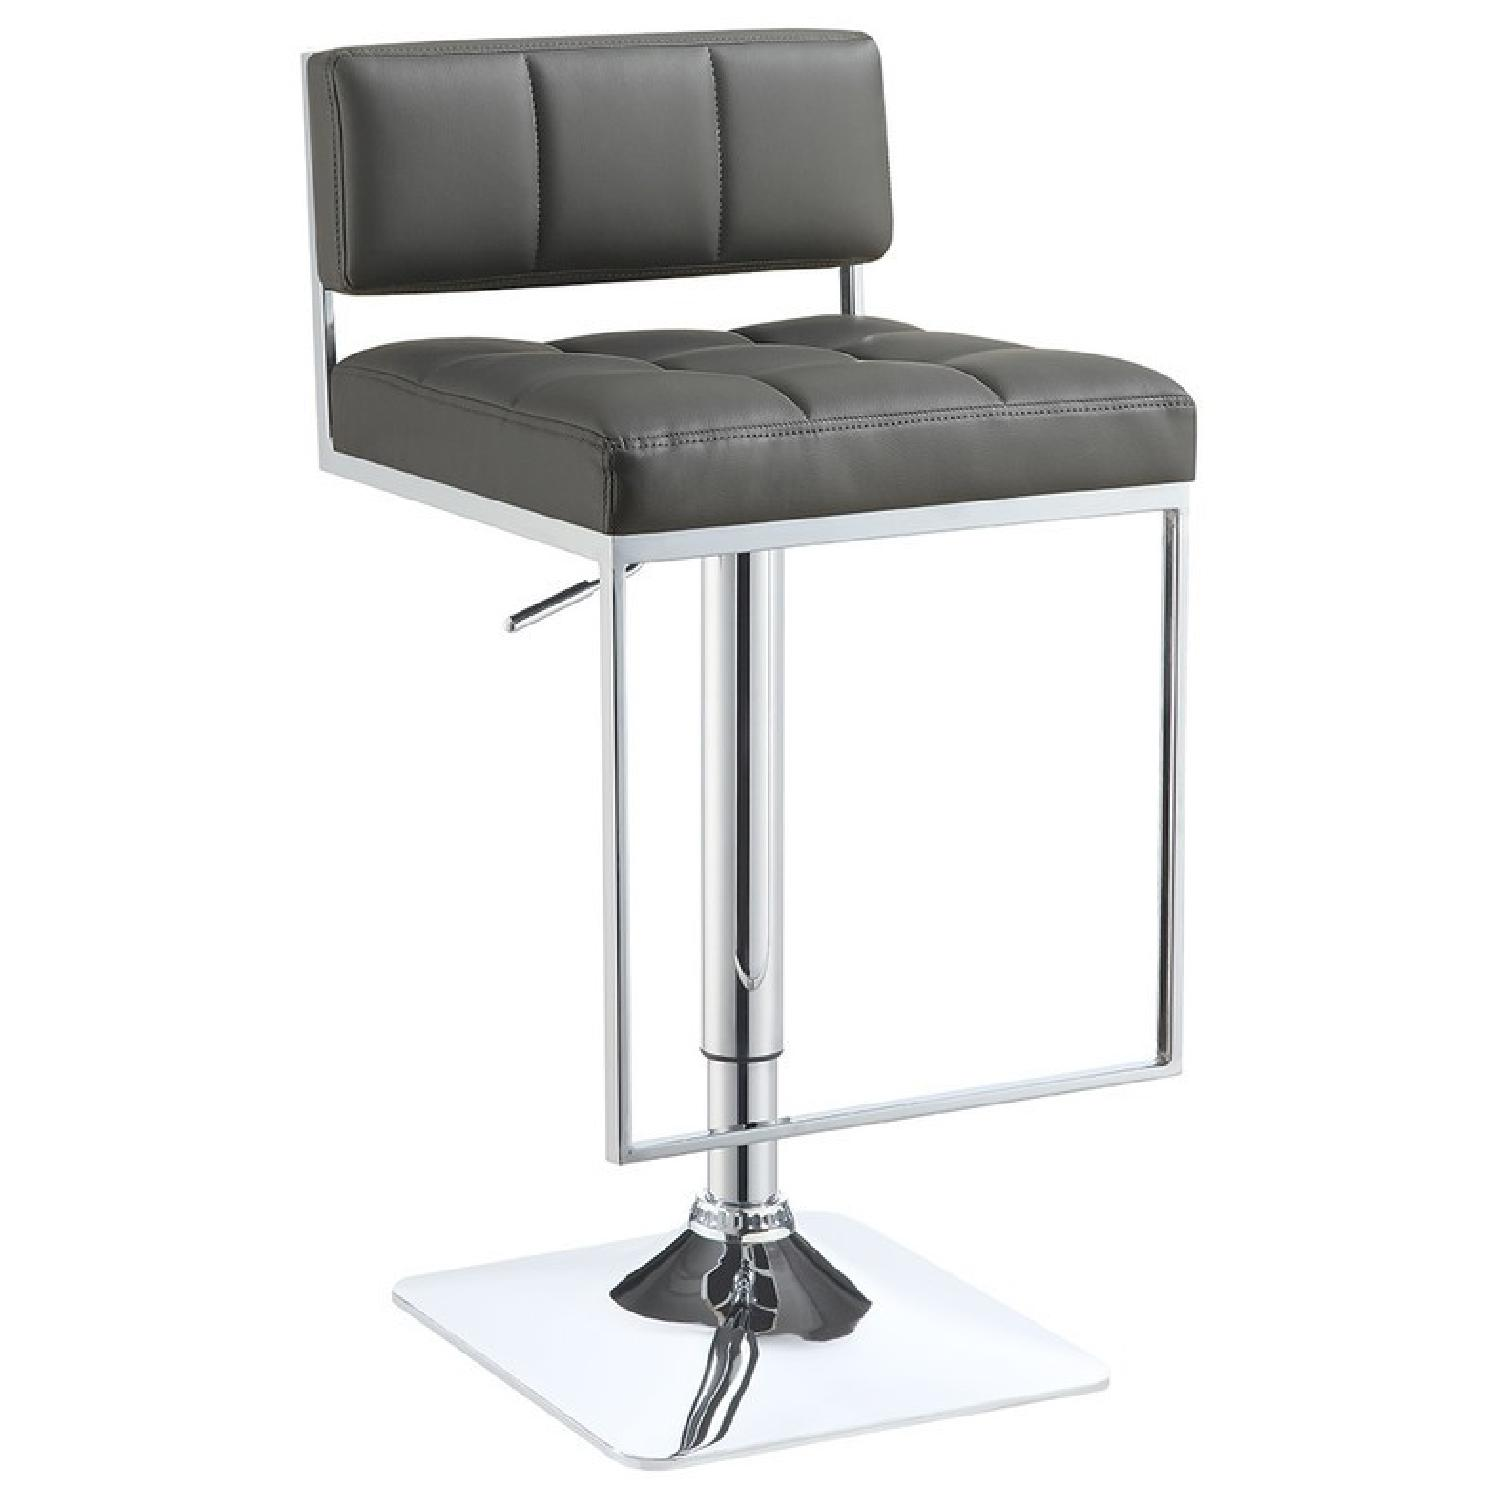 Modern Style Barstool w/ Tufted Cushions in Grey Faux Leather & Chrome Base/Leg Rest